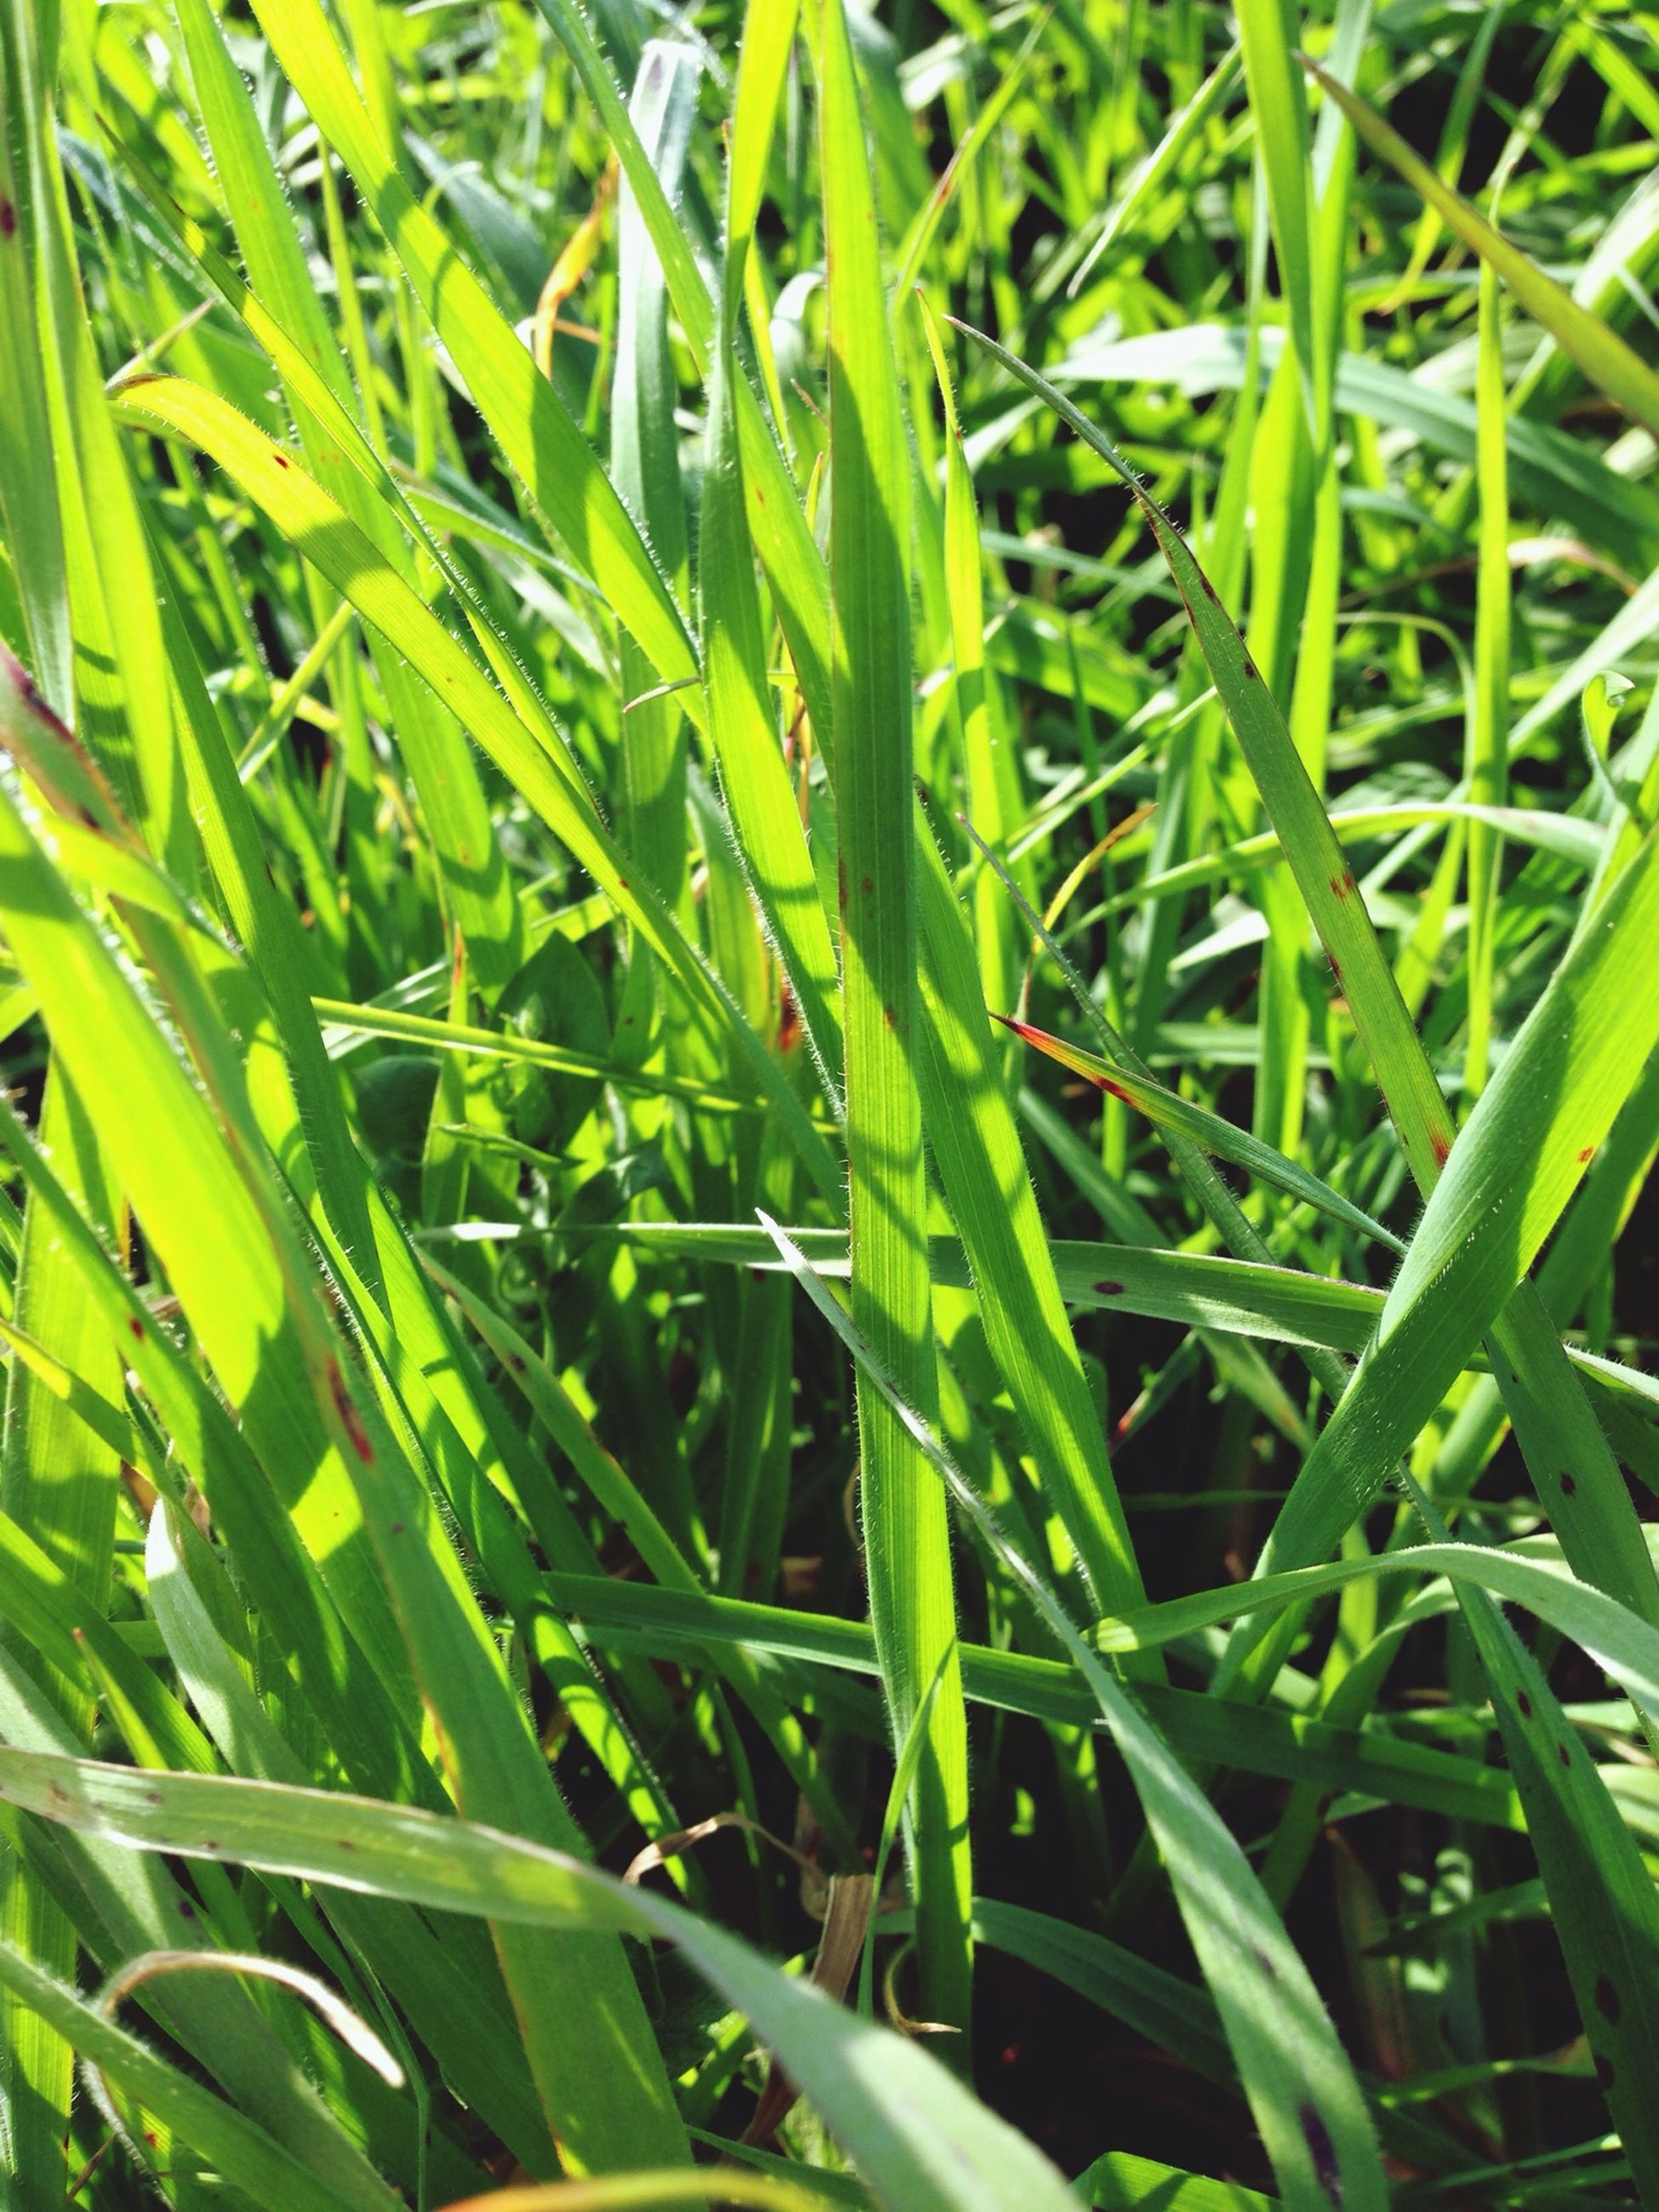 grass, green color, growth, blade of grass, plant, field, nature, leaf, beauty in nature, green, full frame, grassy, close-up, backgrounds, freshness, lush foliage, tranquility, day, outdoors, no people